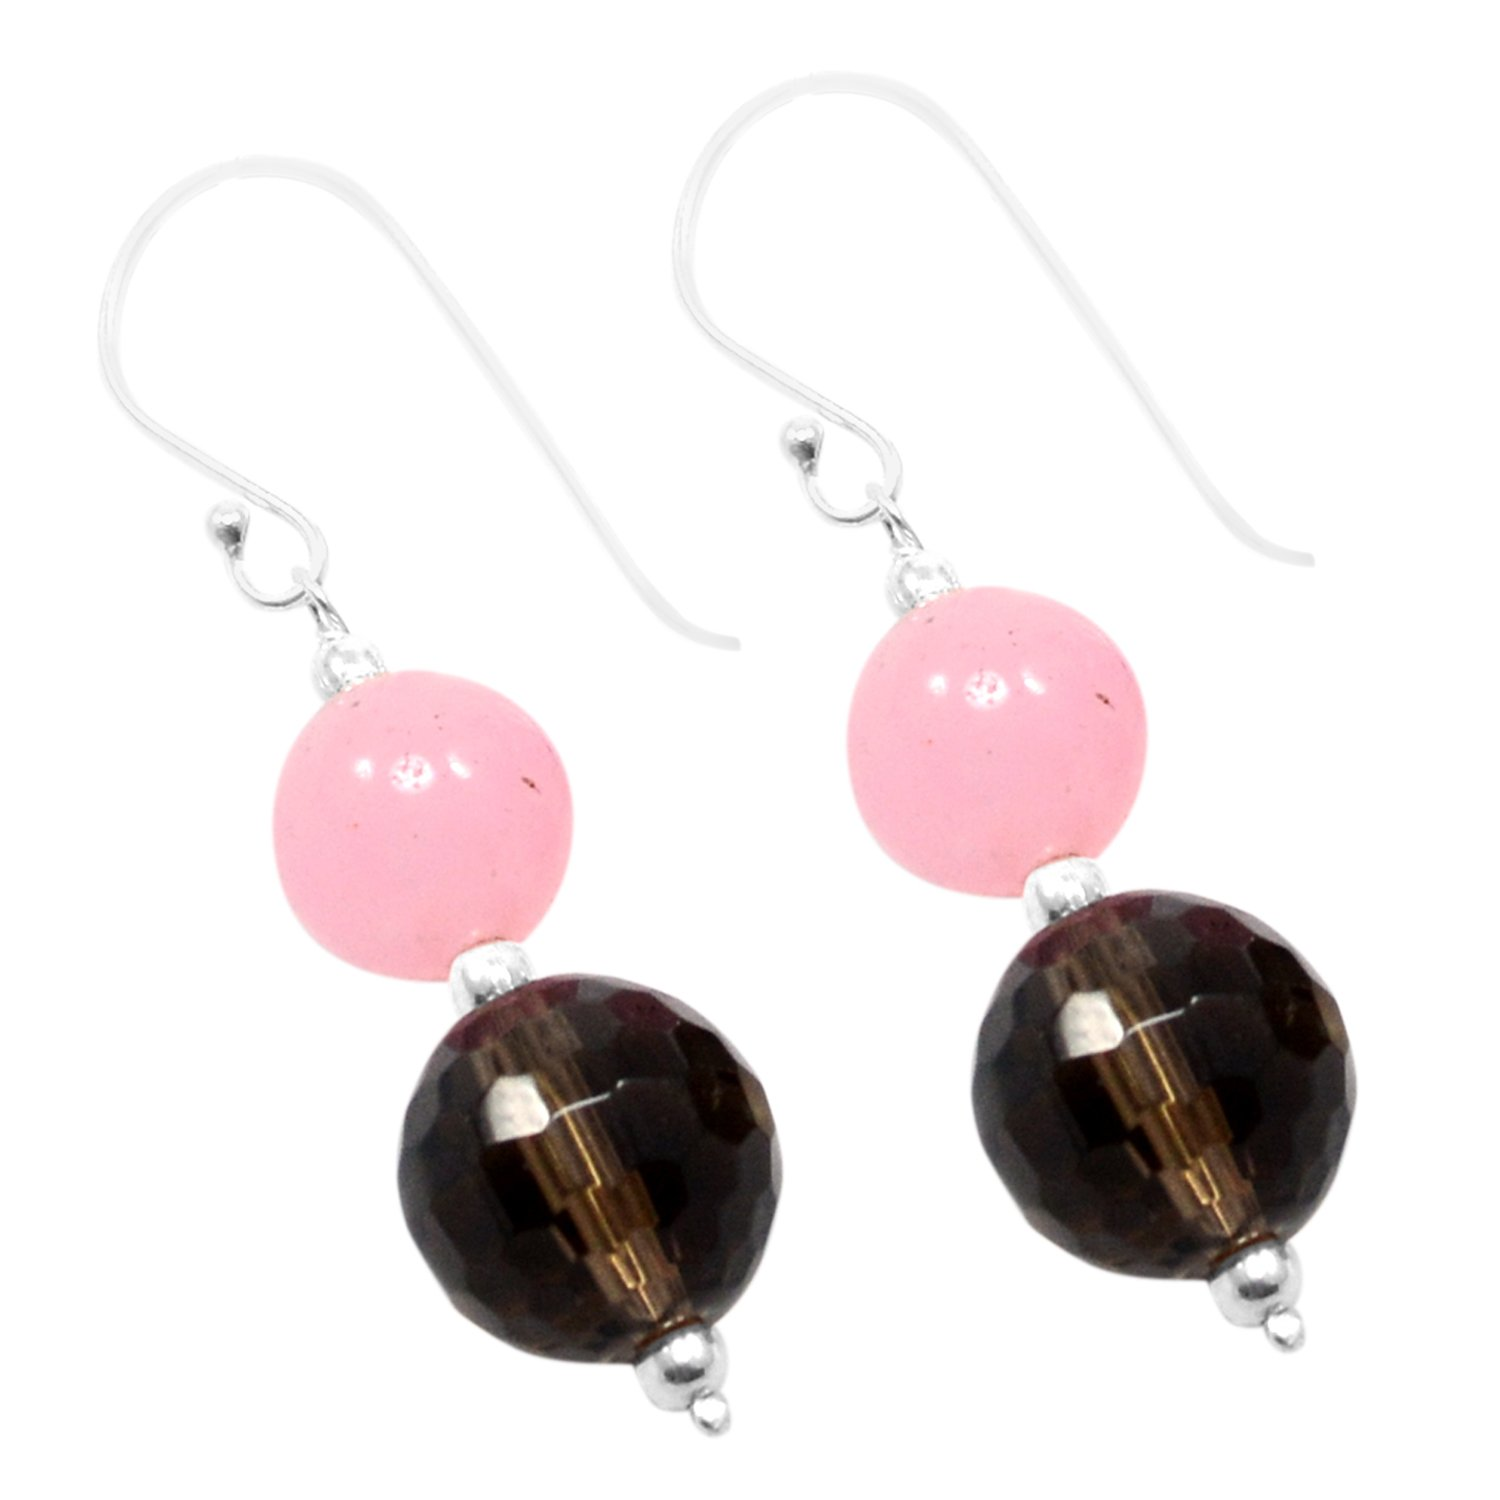 Brown Smoky Quartz 925 Silver Round Ball Beads /& Silver Hook Dangle Earring Jaipur Rajasthan India Handmade Jewelry Manufacturer Pink Rose